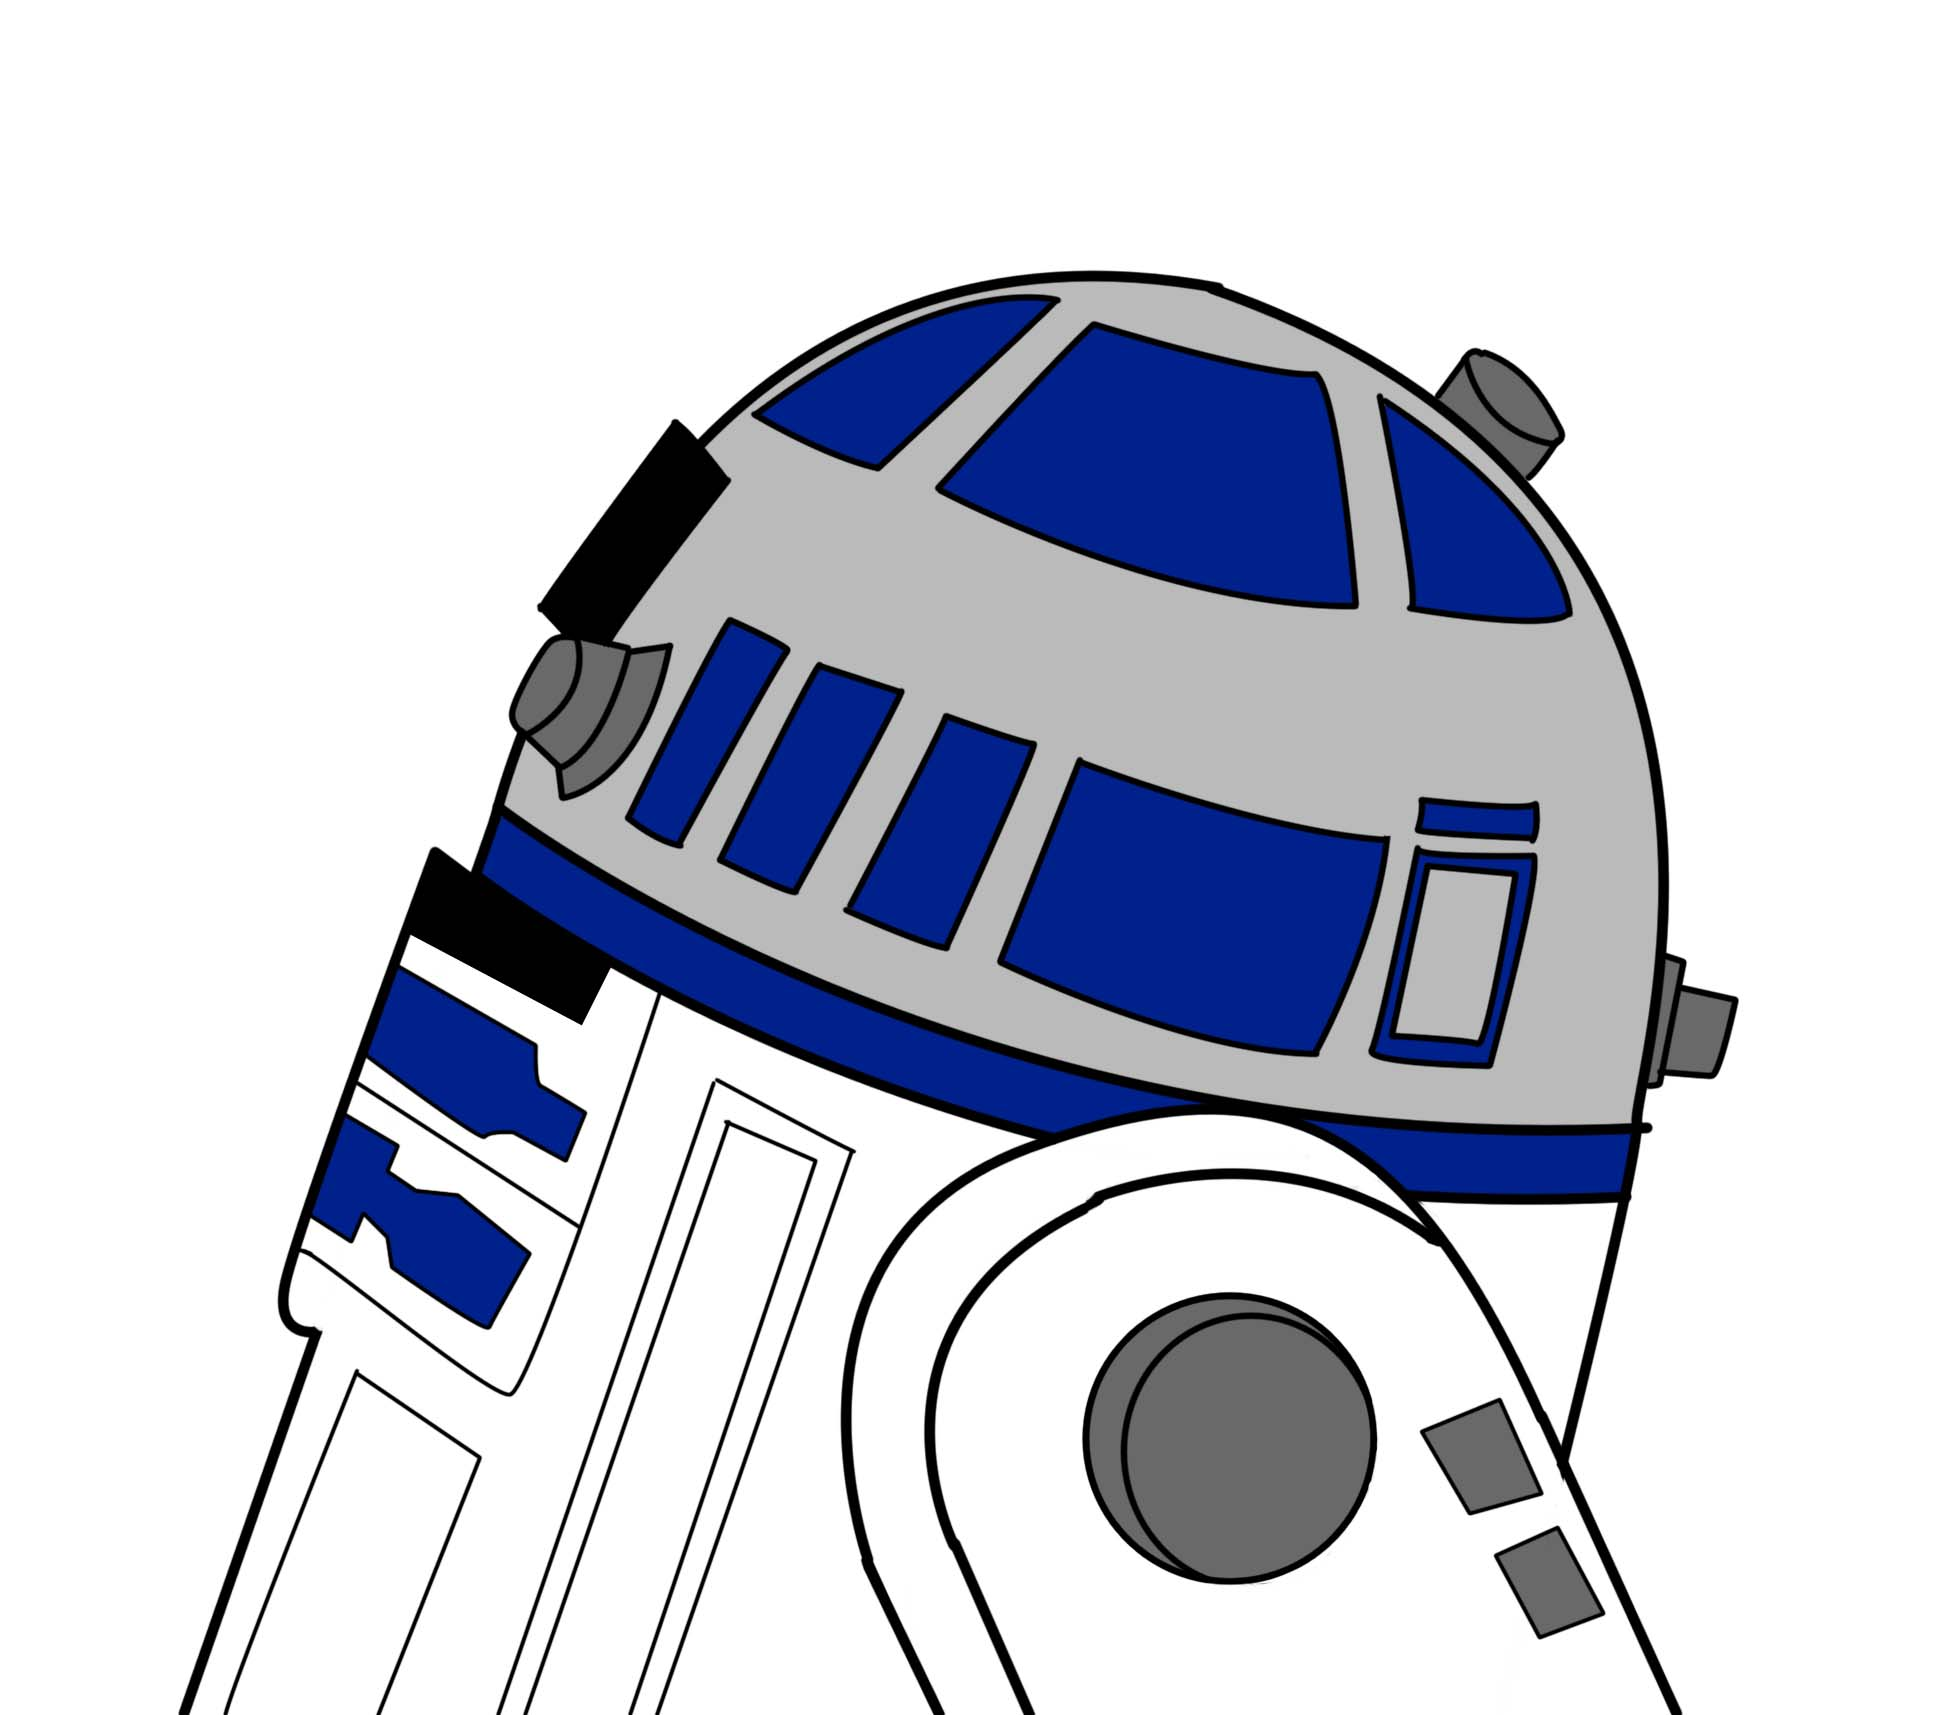 R2D2 by SnapyWapy